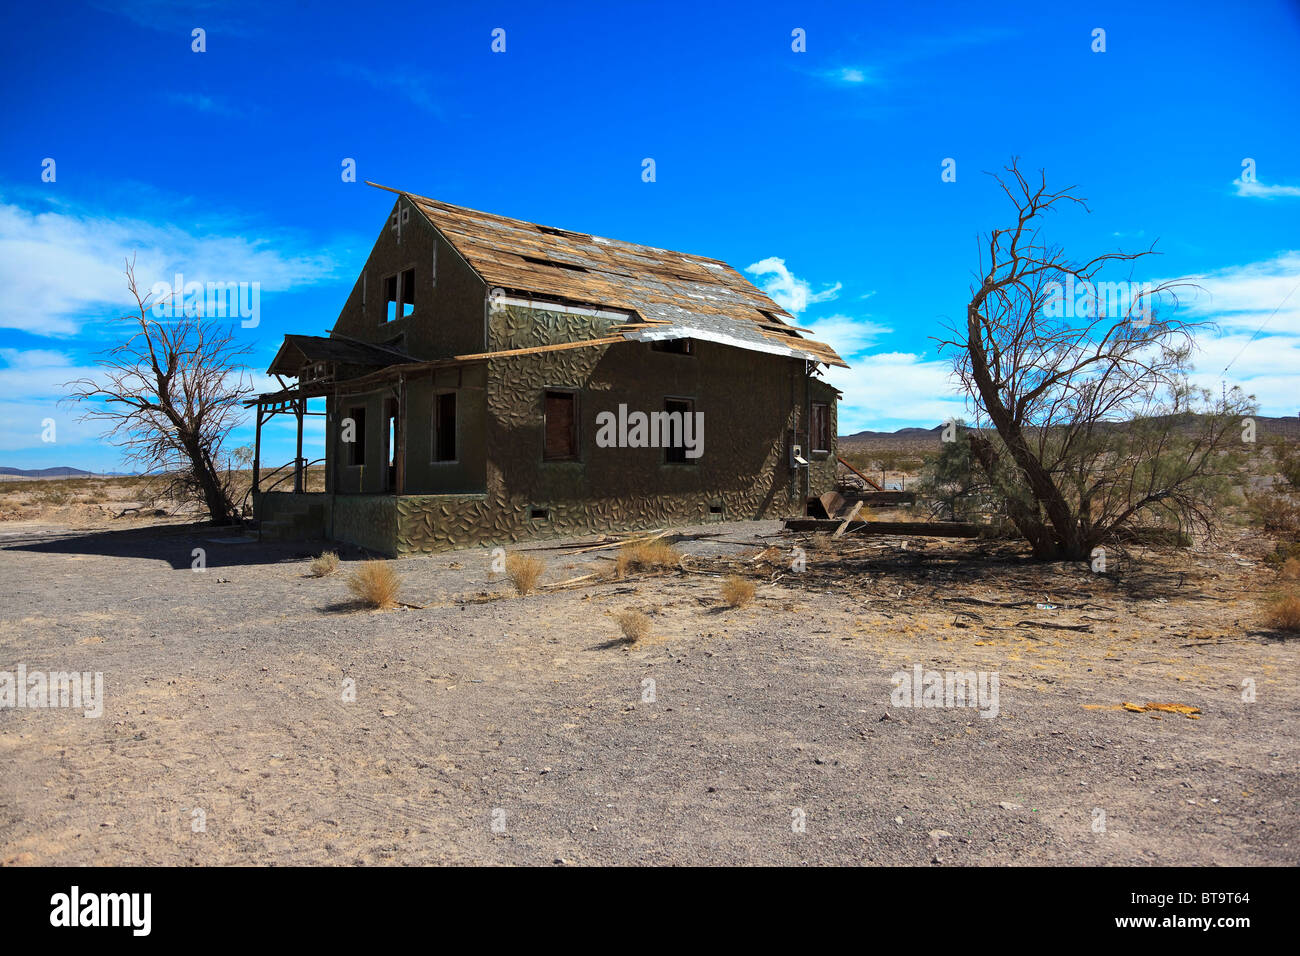 Abandoned Historic Home - abandoned-house-on-the-historic-route-66-ludlow-california-usa-north-BT9T64_Simple Abandoned Historic Home - abandoned-house-on-the-historic-route-66-ludlow-california-usa-north-BT9T64  Perfect Image Reference_38396.jpg